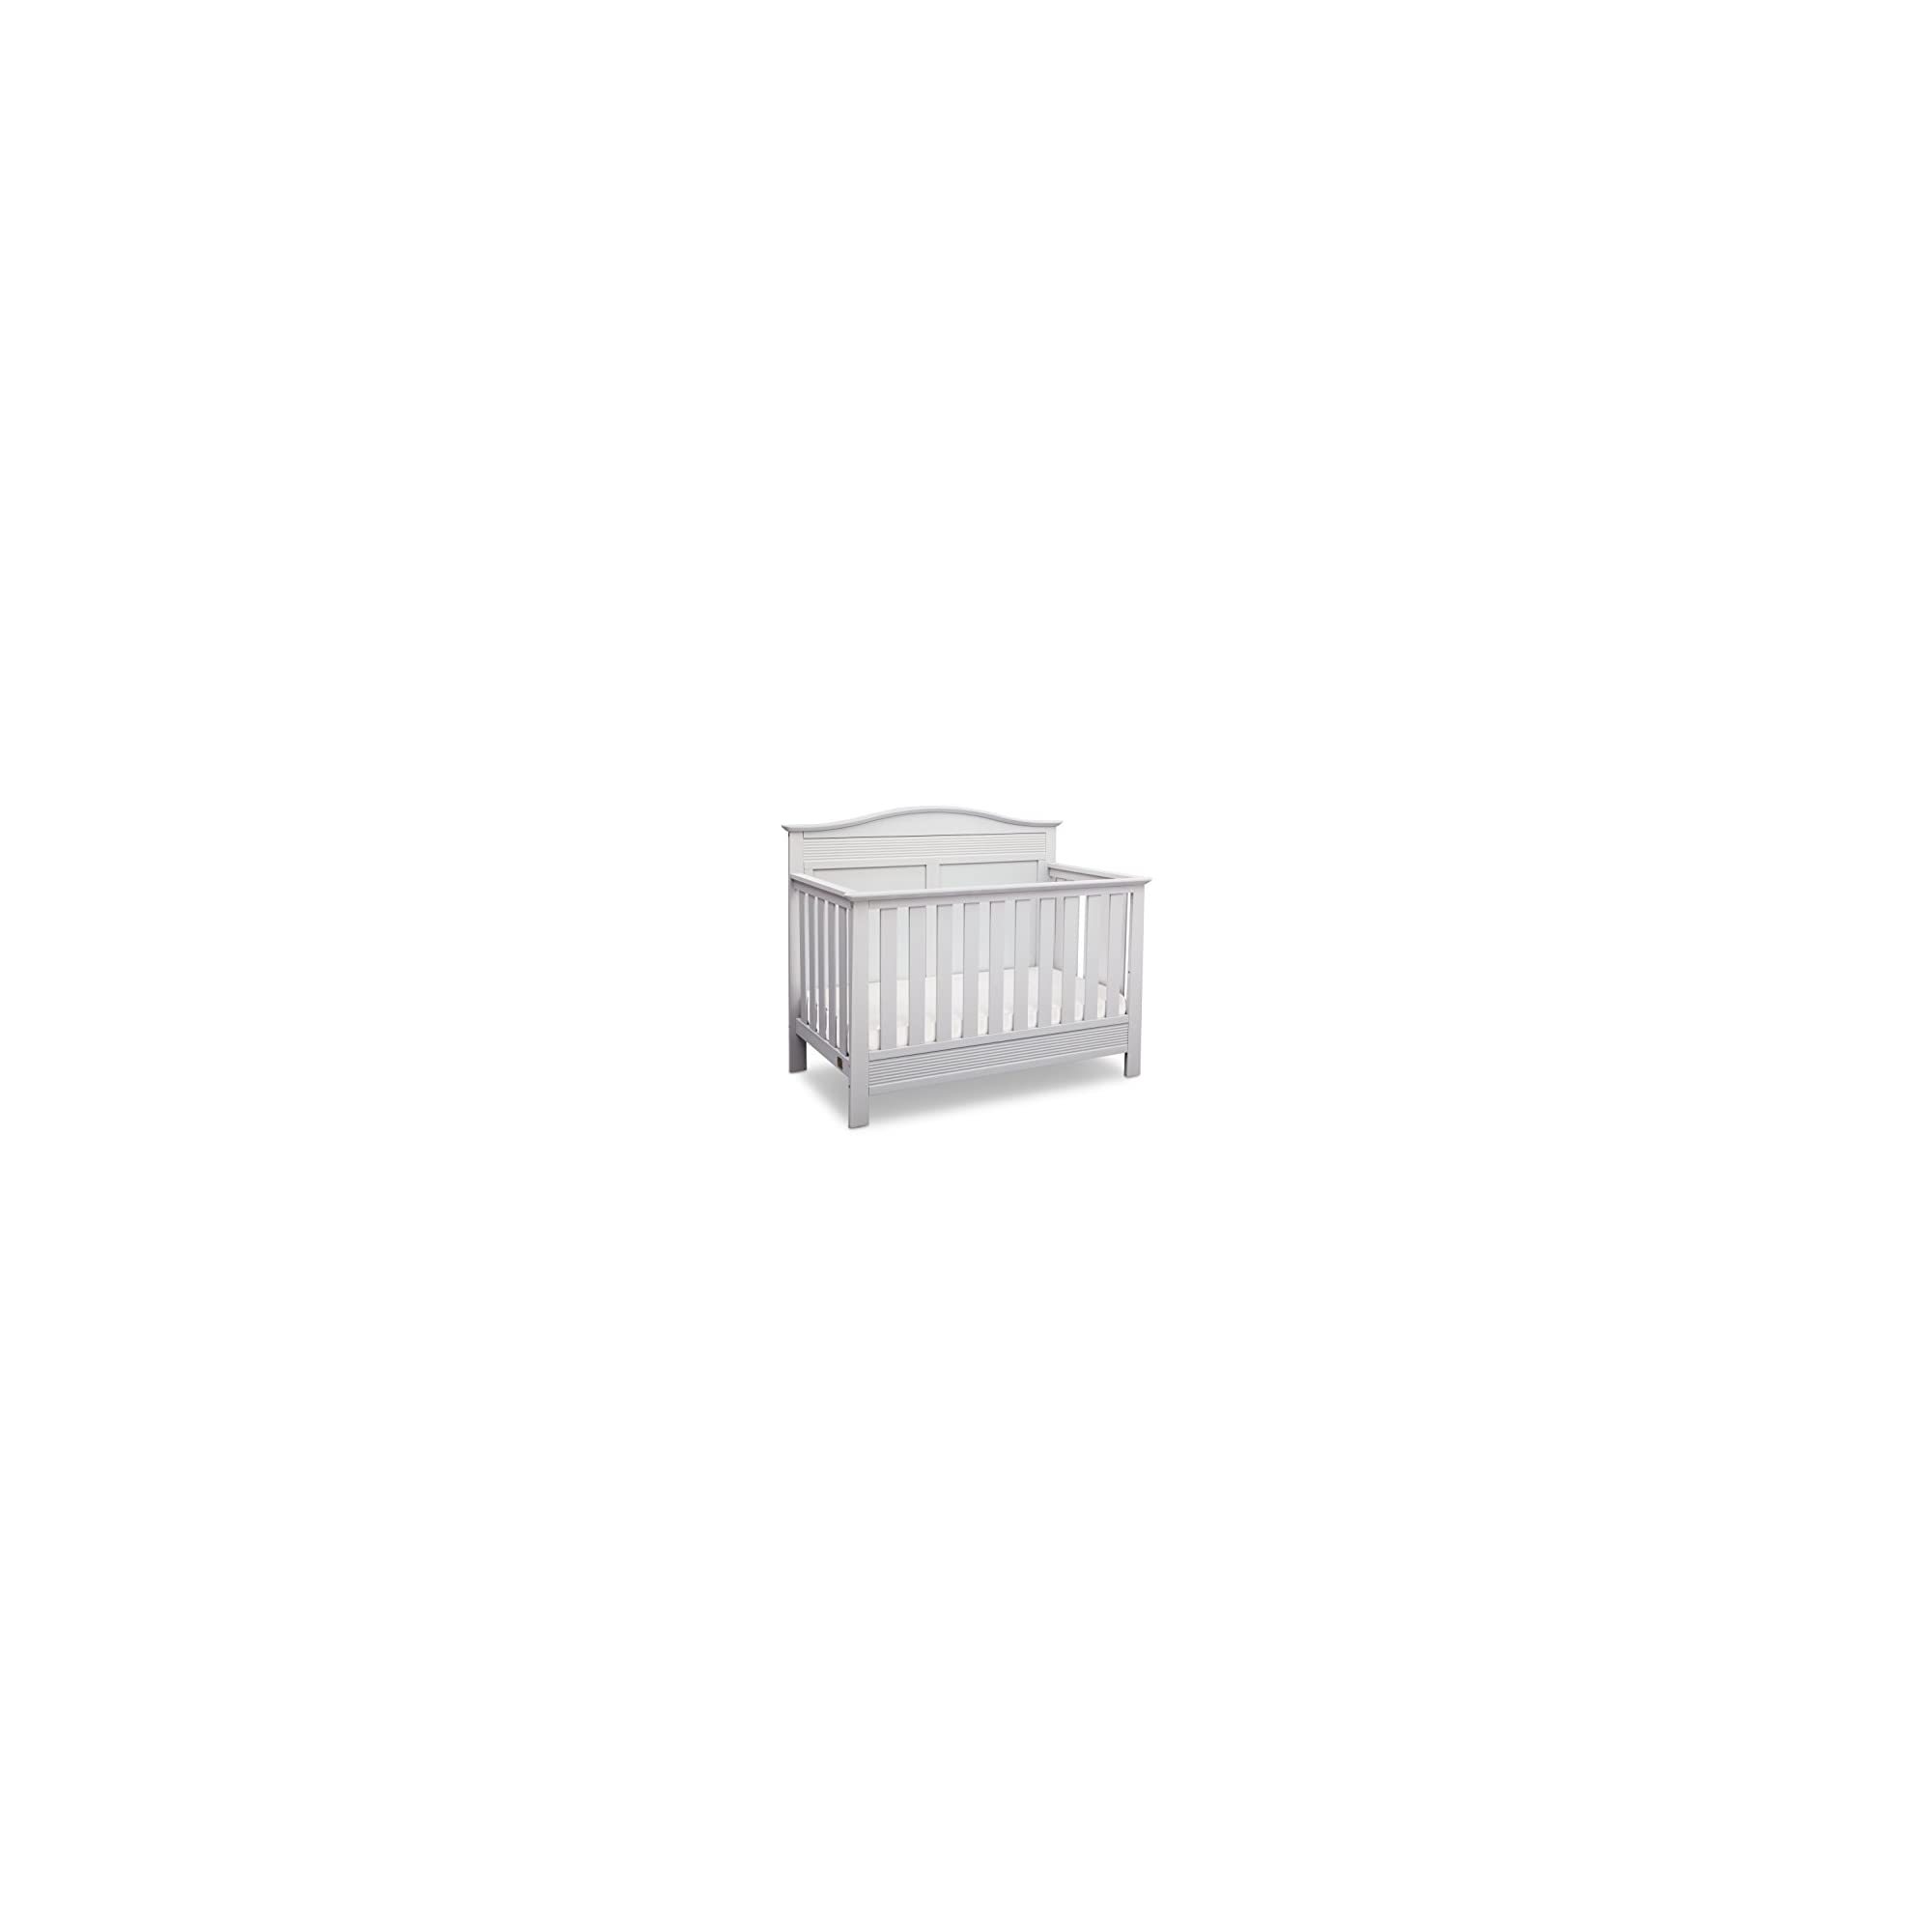 Serta Barrett 4-in-1 Convertible Baby Crib, Bianca White